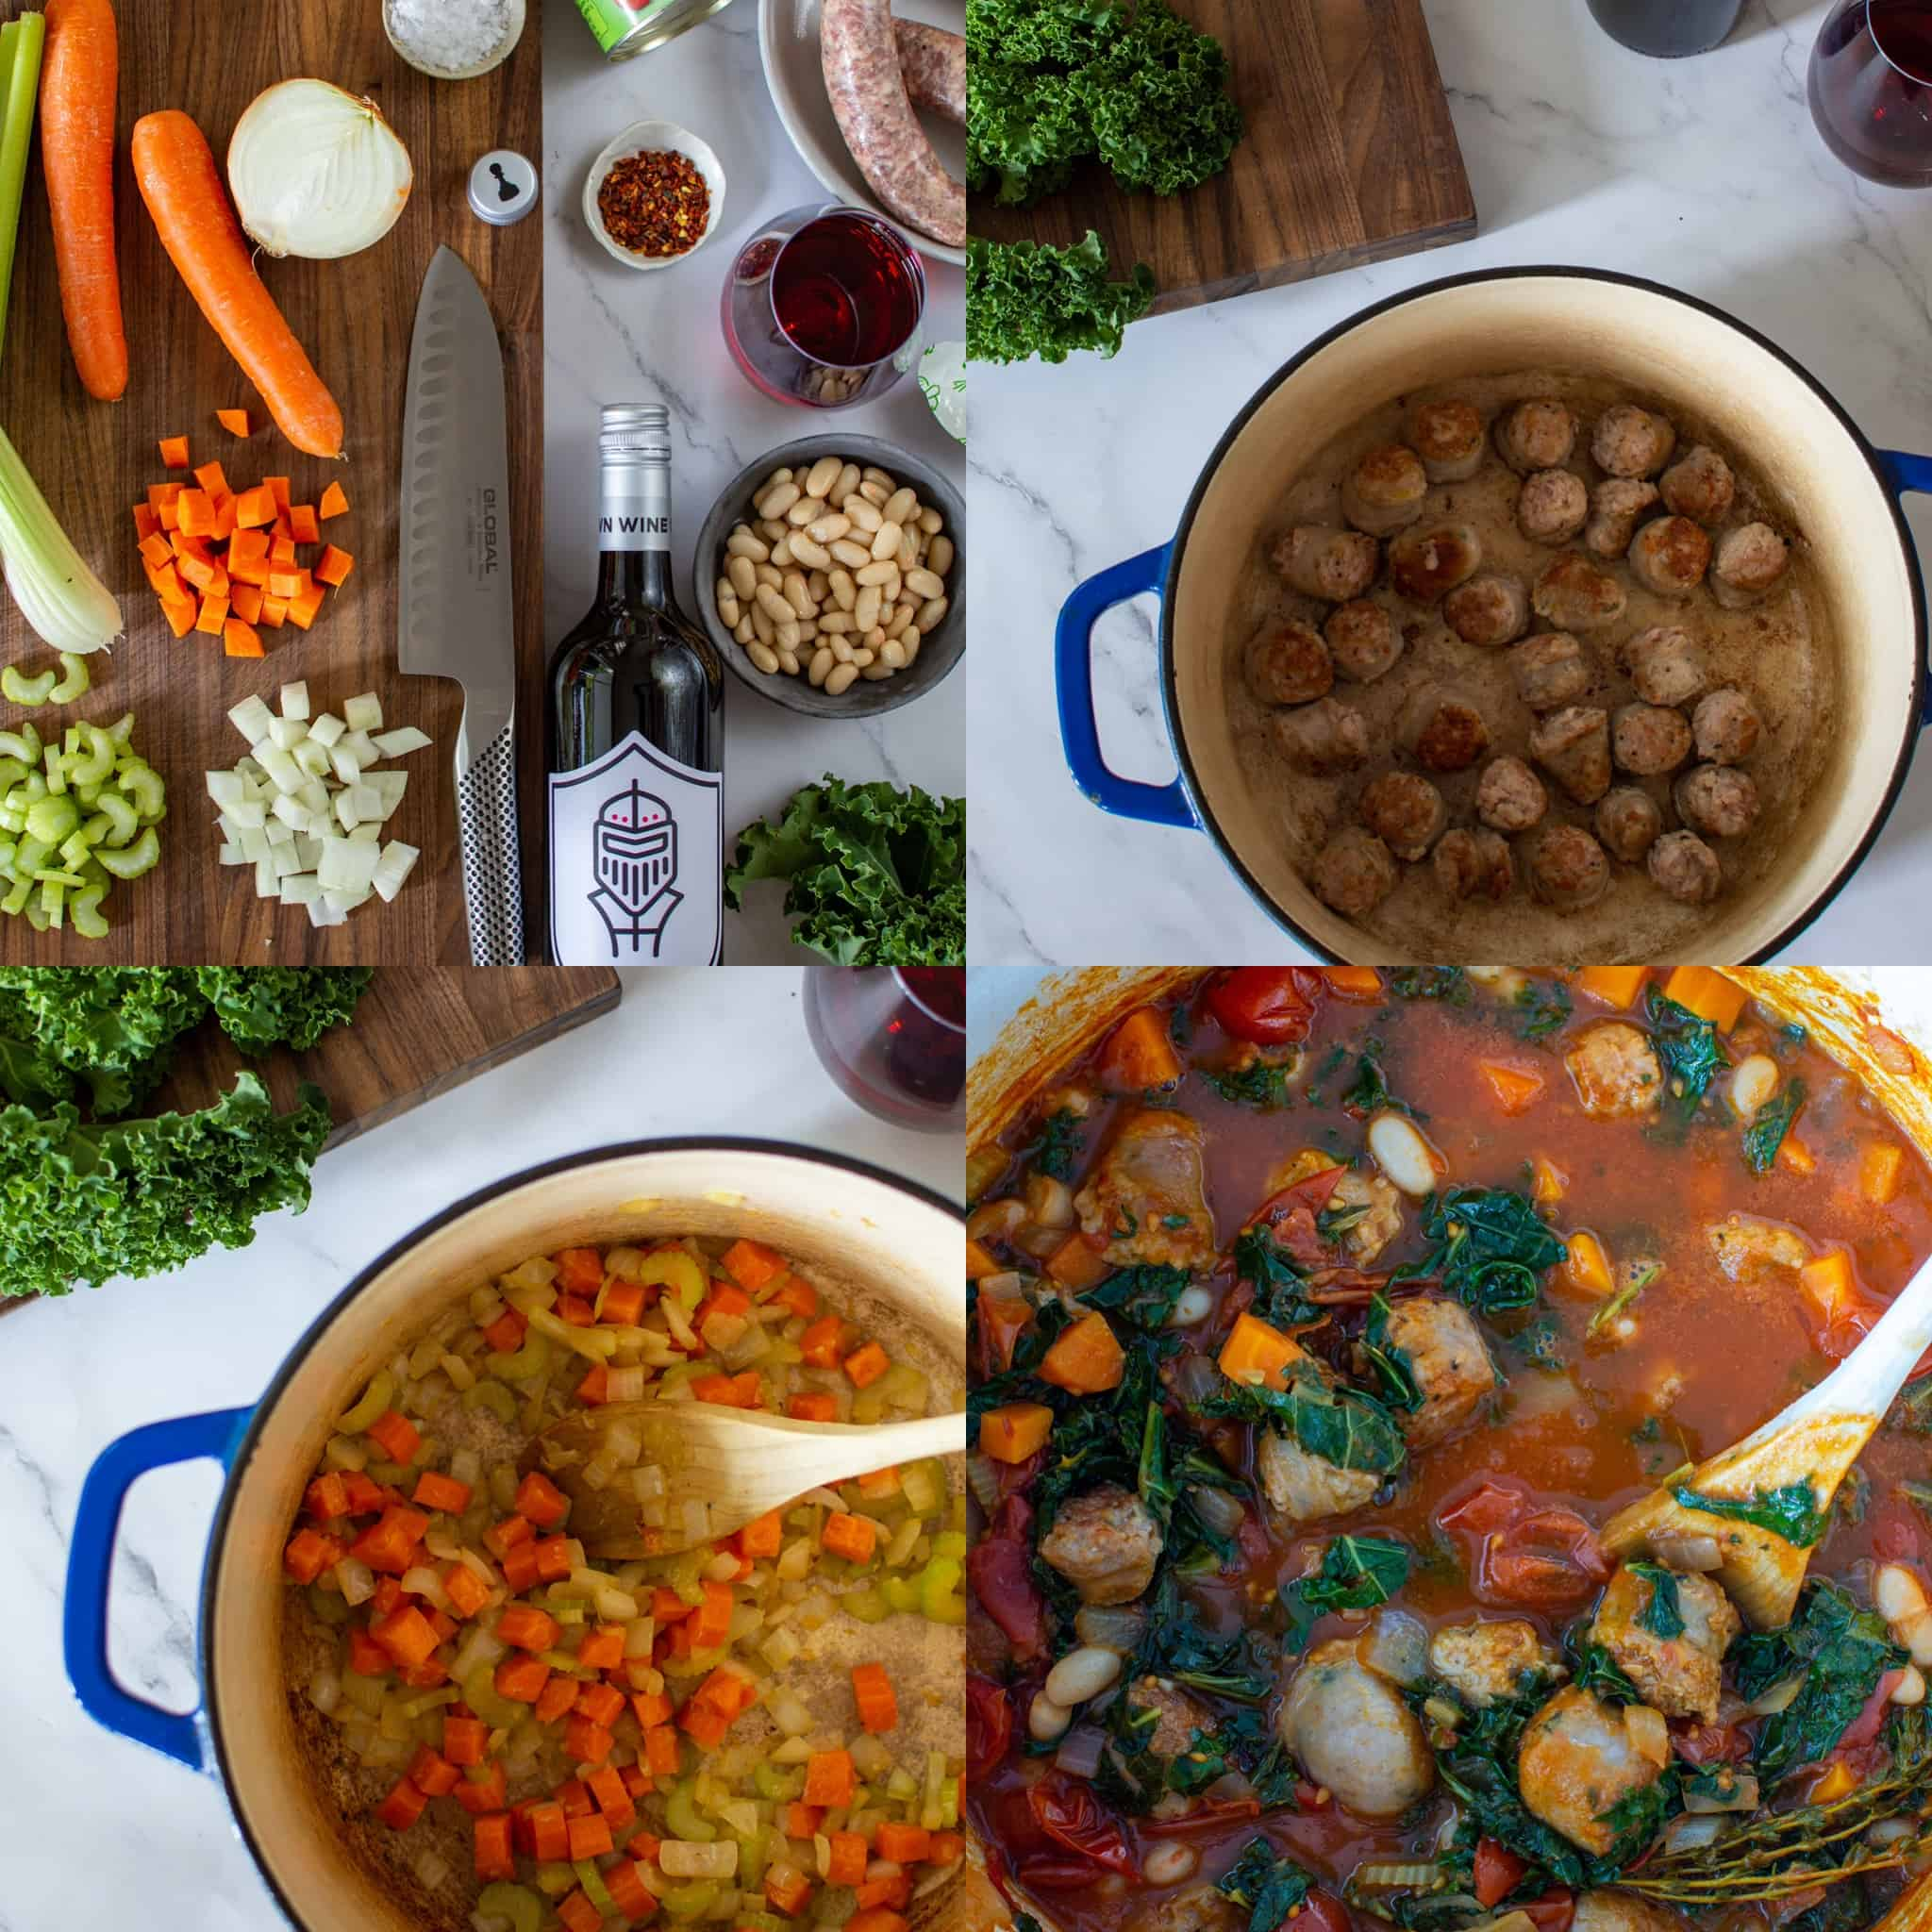 4 images showing how to make tuscan sausage stew